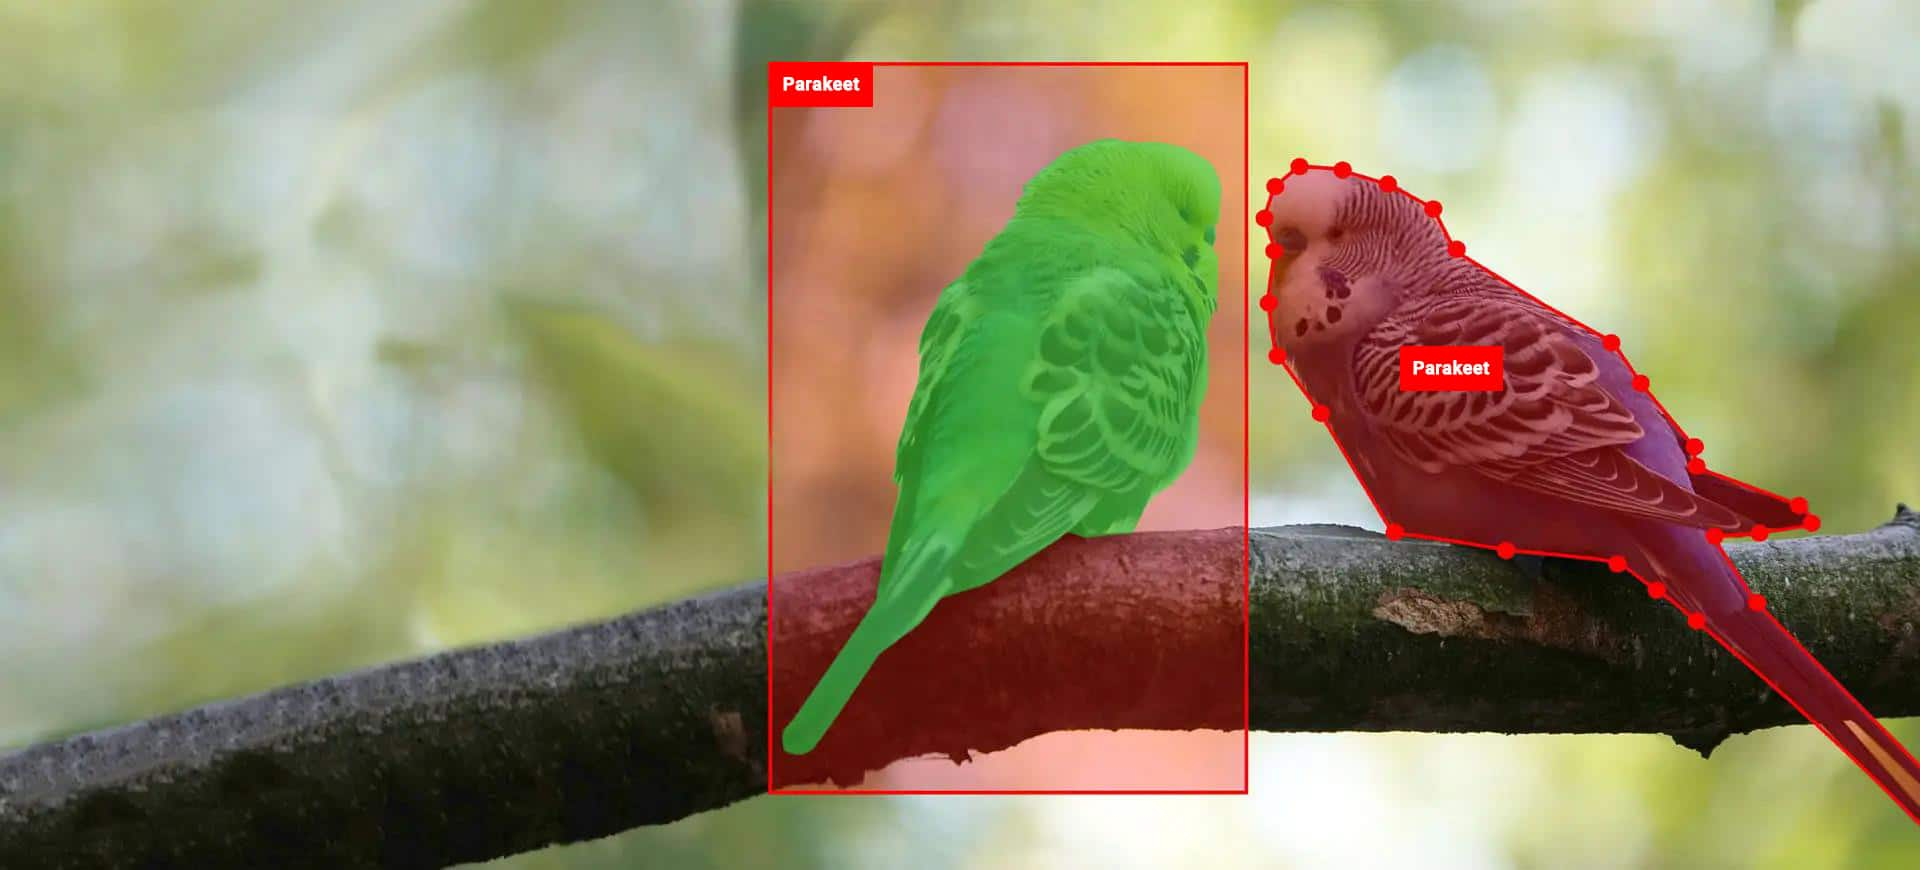 Parakeet detection - bird species detection